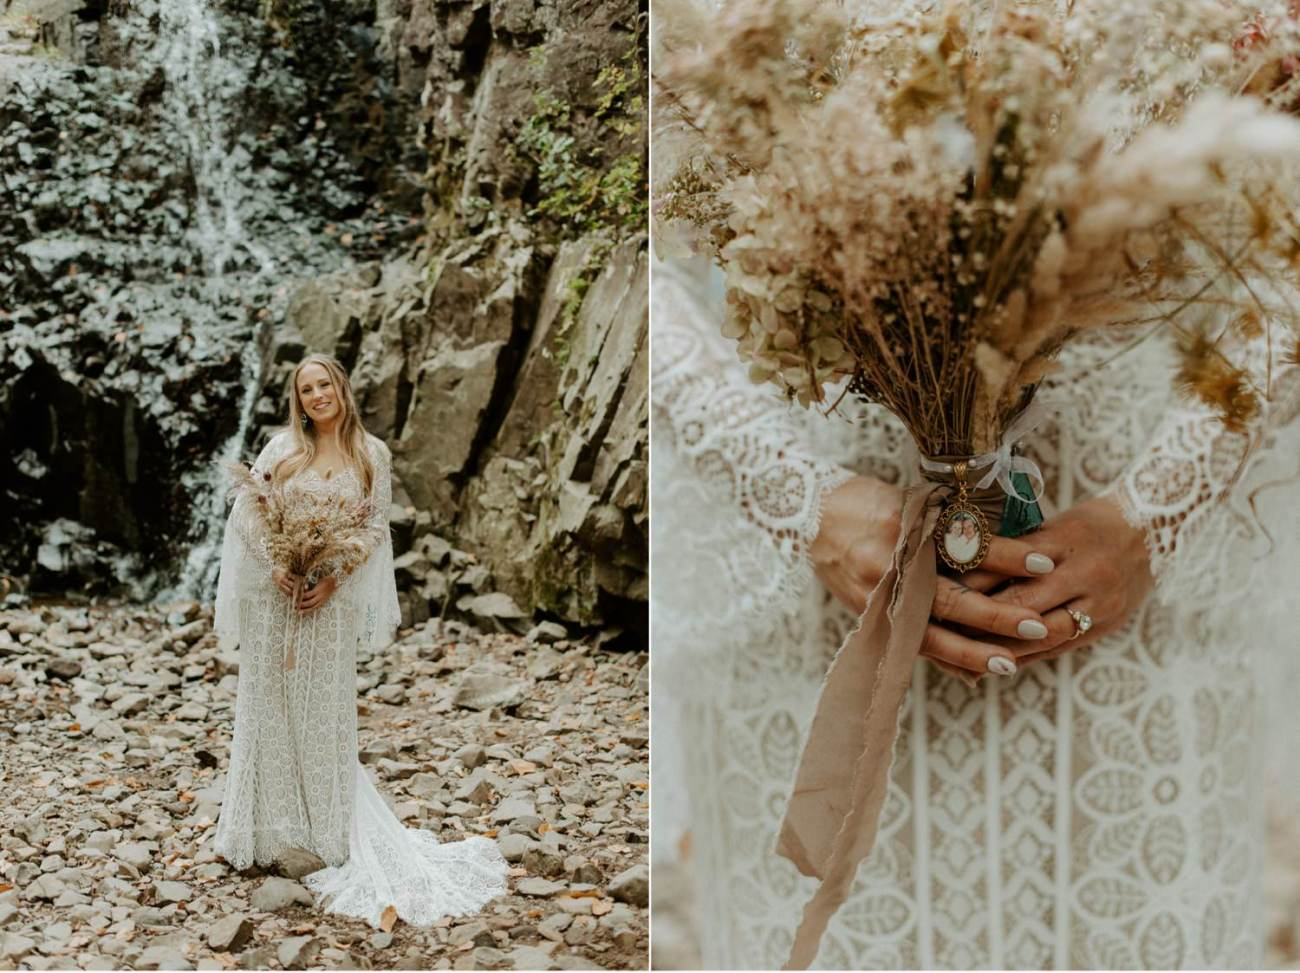 New Jersey Backyard Wedding Vintage Boho Wedding Hemlock Falls NJ Bend Oregon Wedding Phtographer Anais Possamai Photography 017